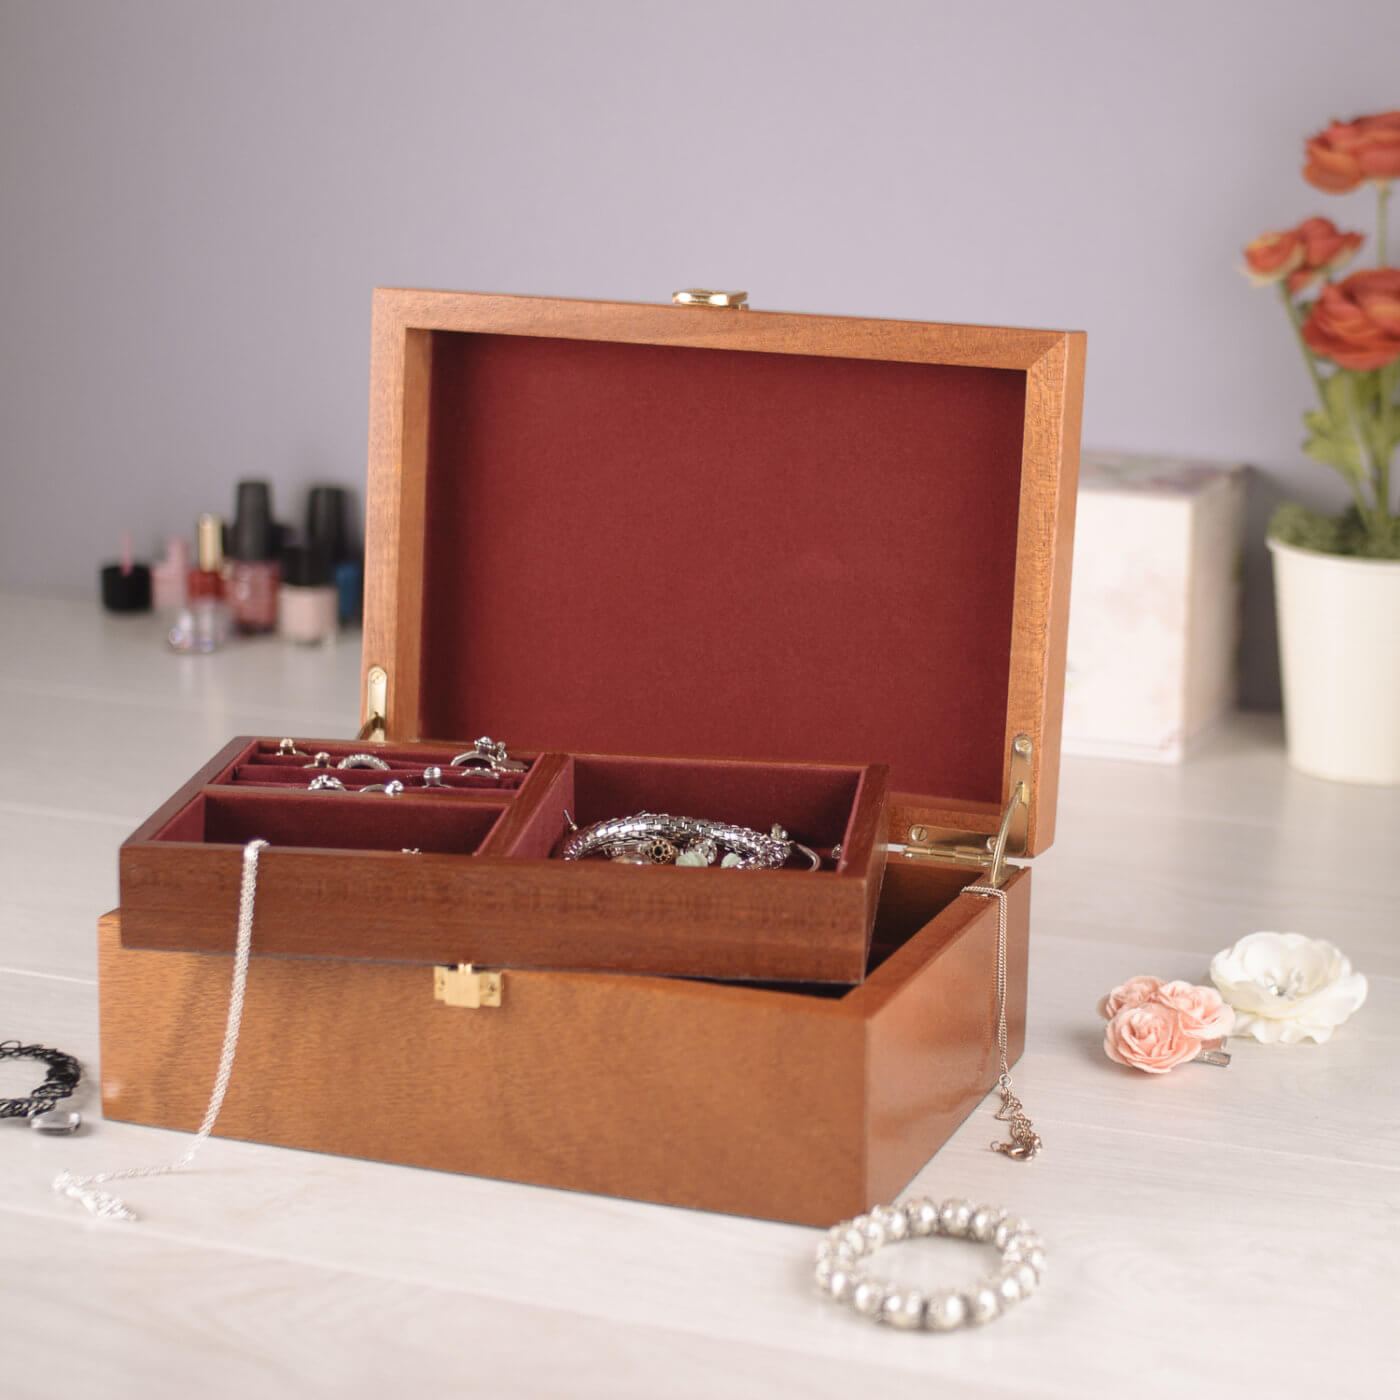 Makers Tiswood jewellery box product photograph with accompanying jewellery props